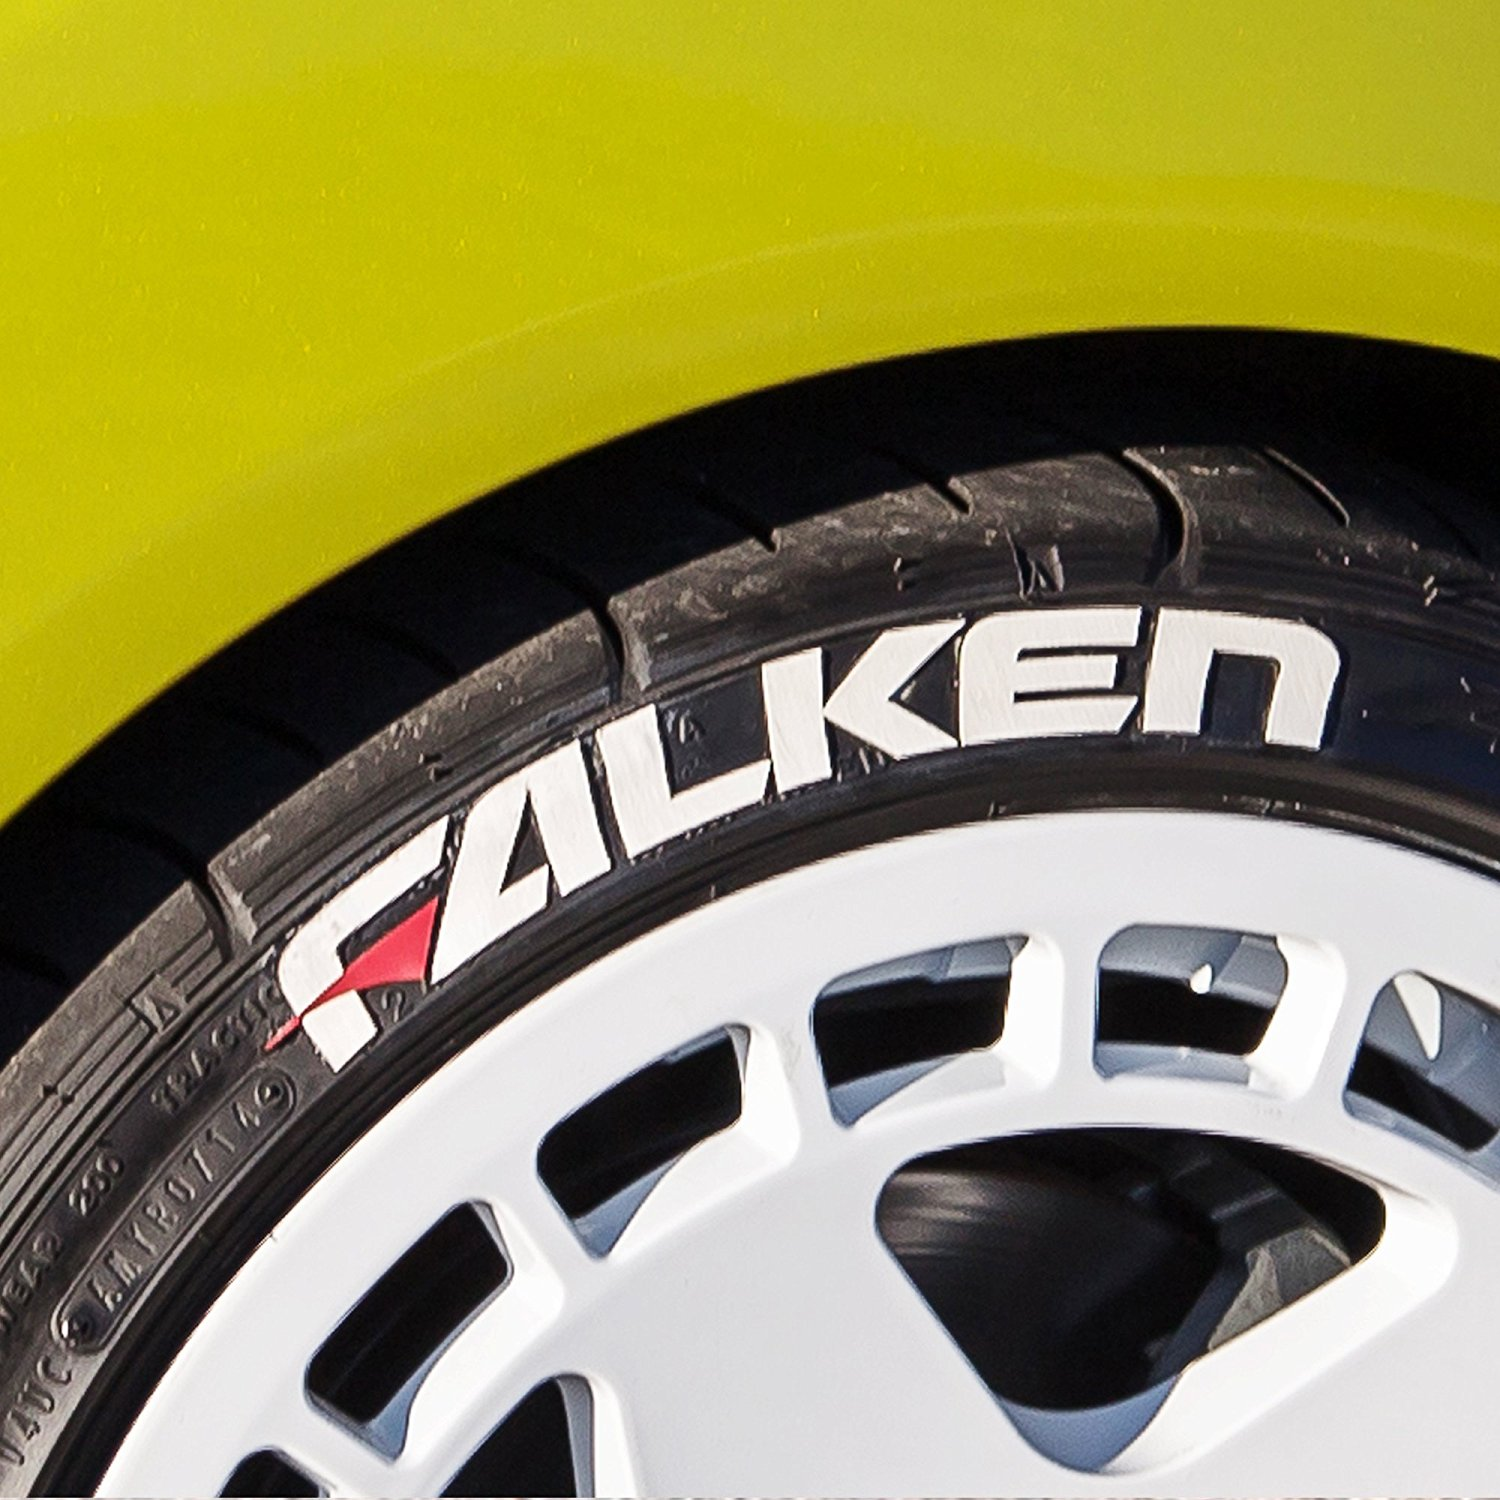 Cheap Tire Lettering find Tire Lettering deals on line at Alibaba